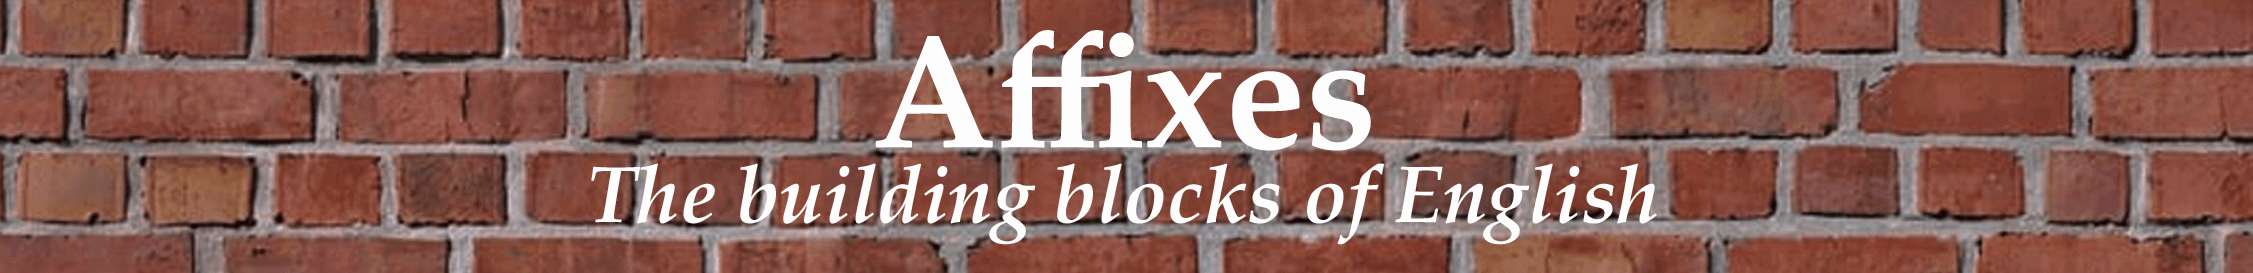 Header image of wall of bricks with affixes